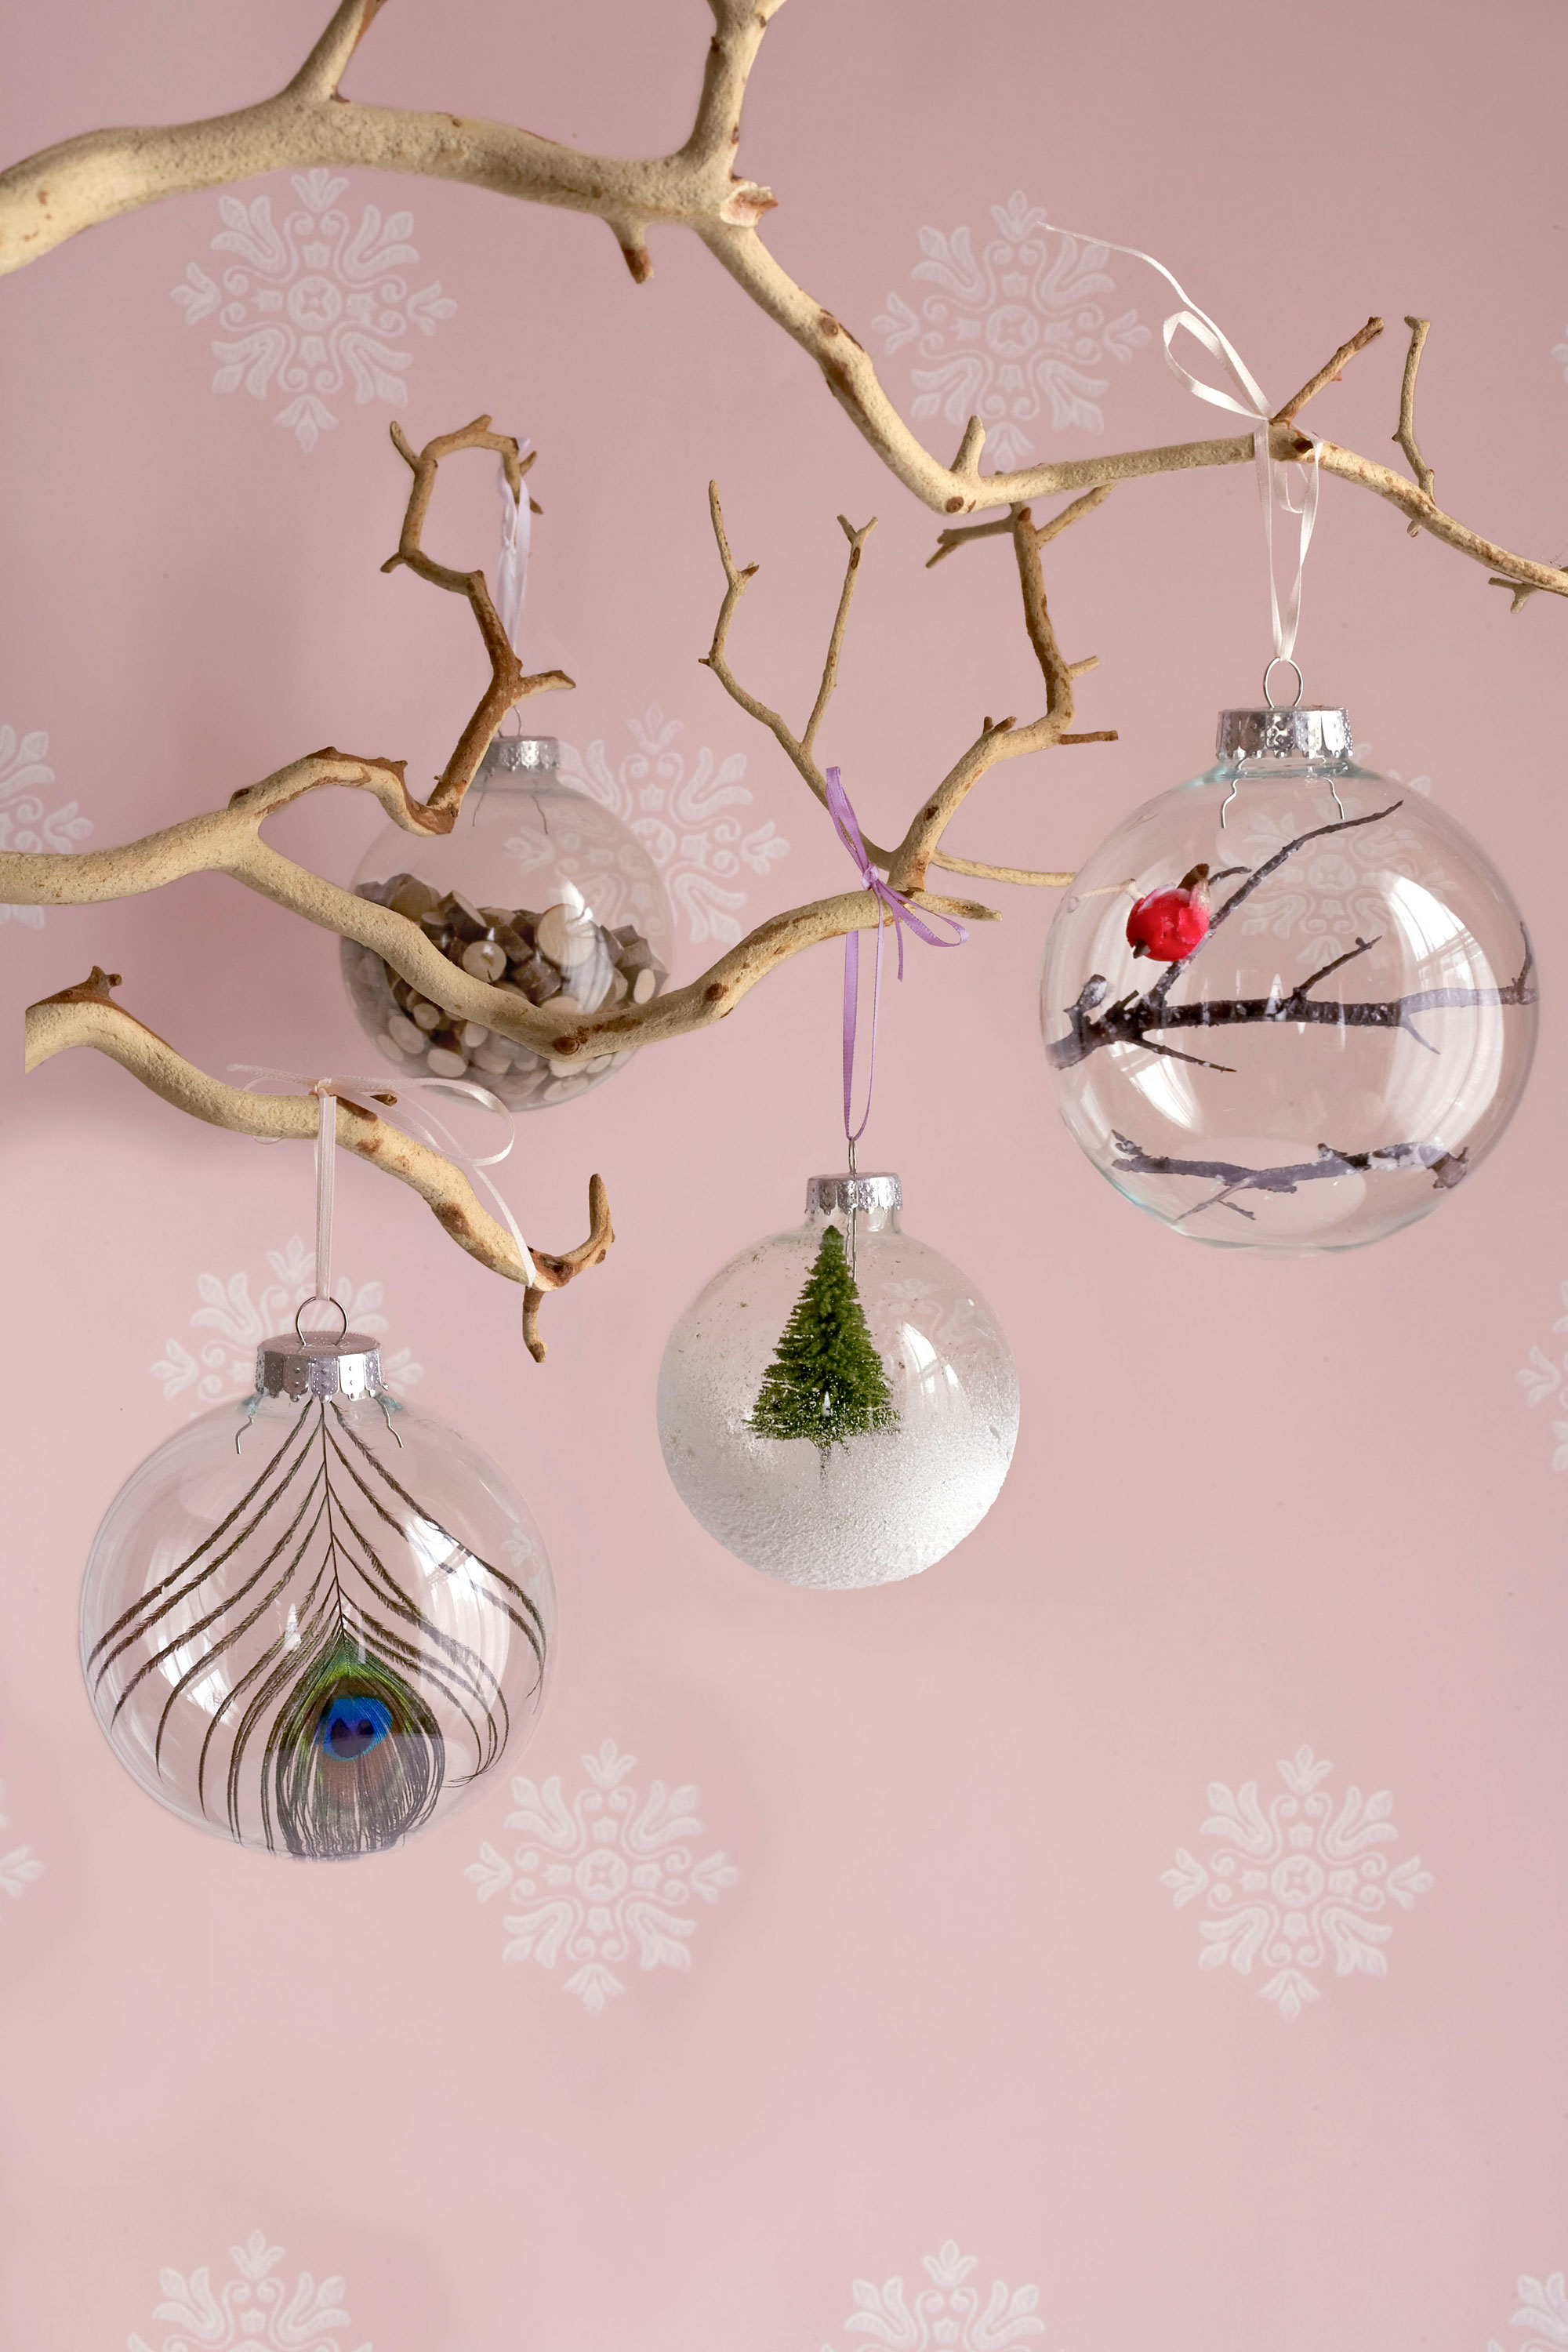 37 DIY Homemade Christmas Decorations - Christmas Decor You Can Make